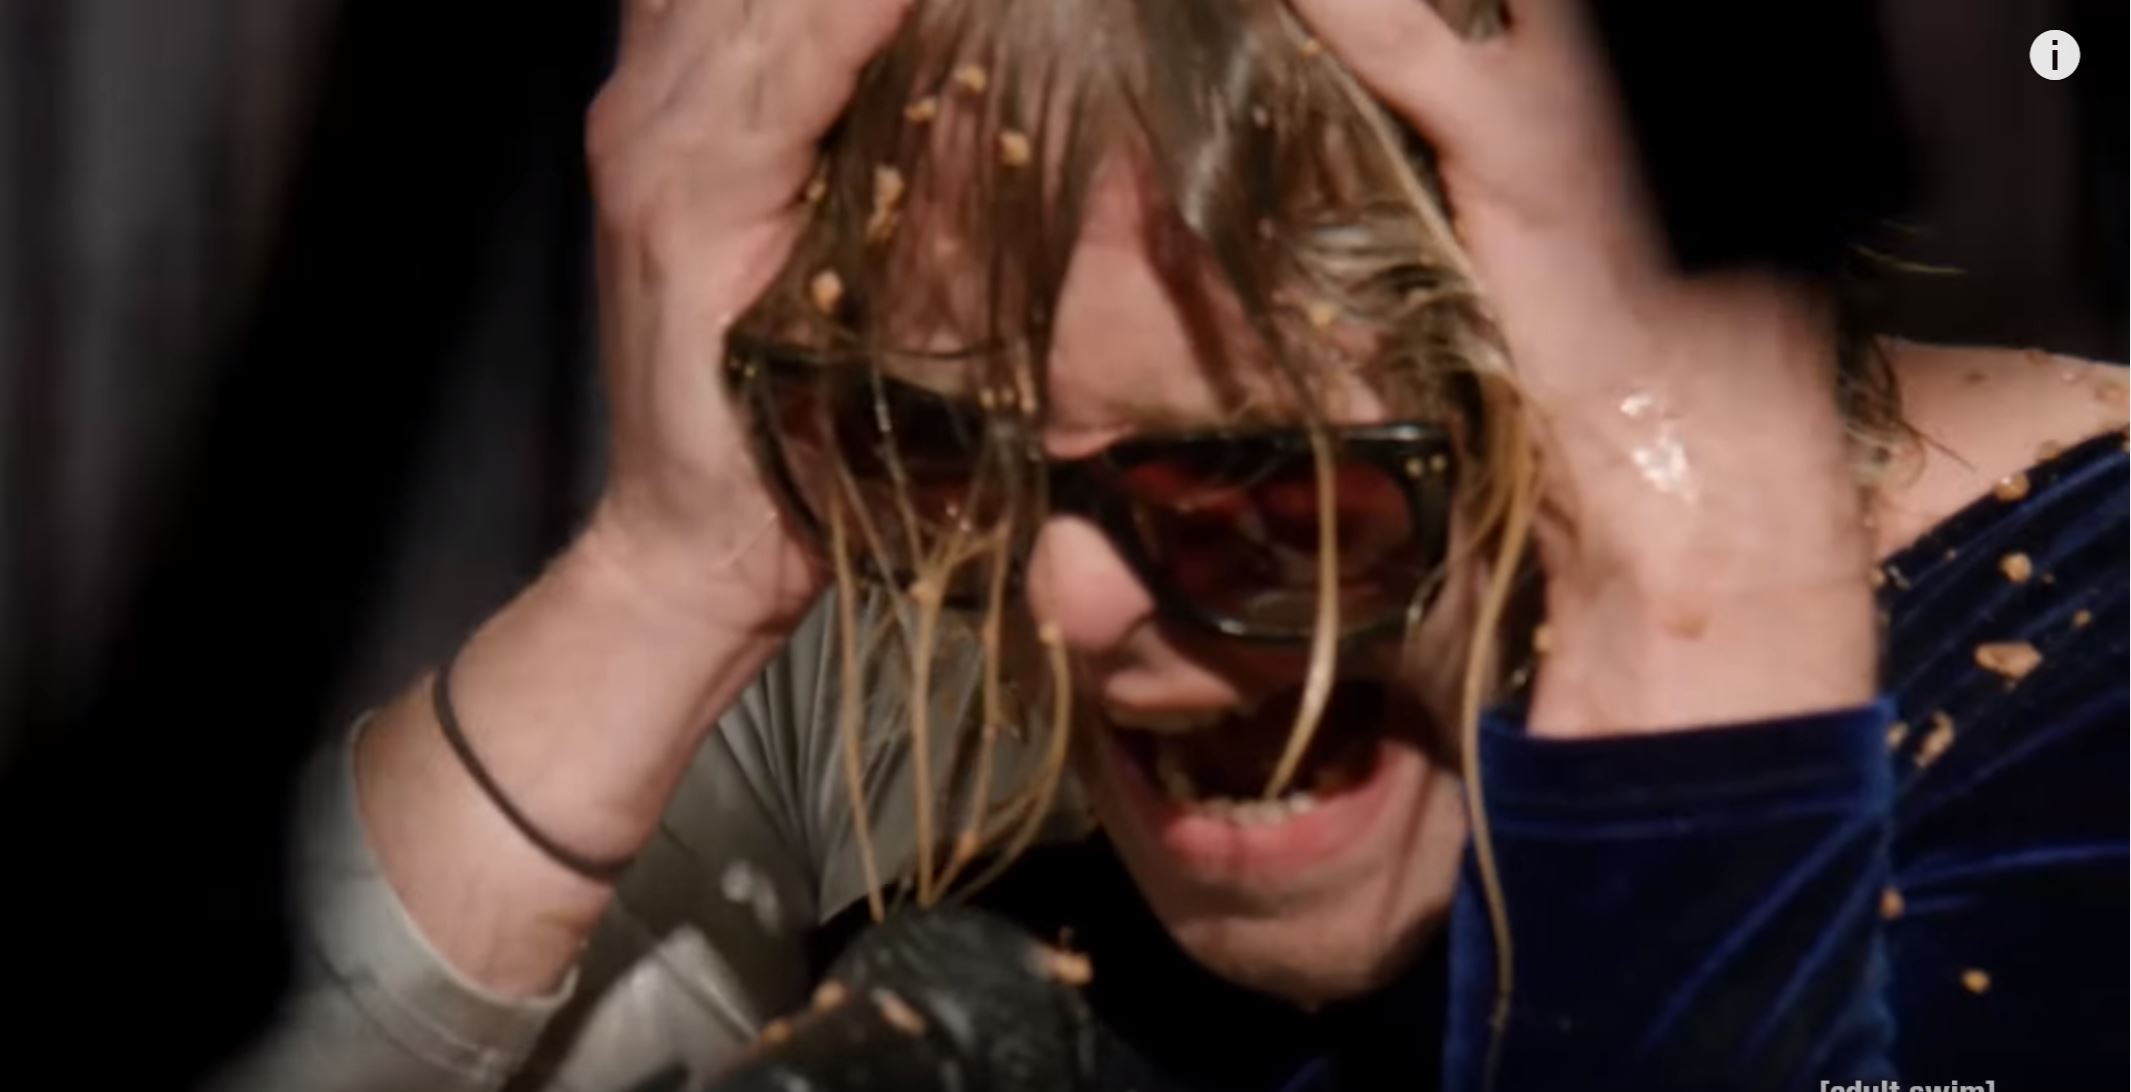 Weirdest Thing This Year? Watch Ariel Pink Perform At The Eric Andre Show